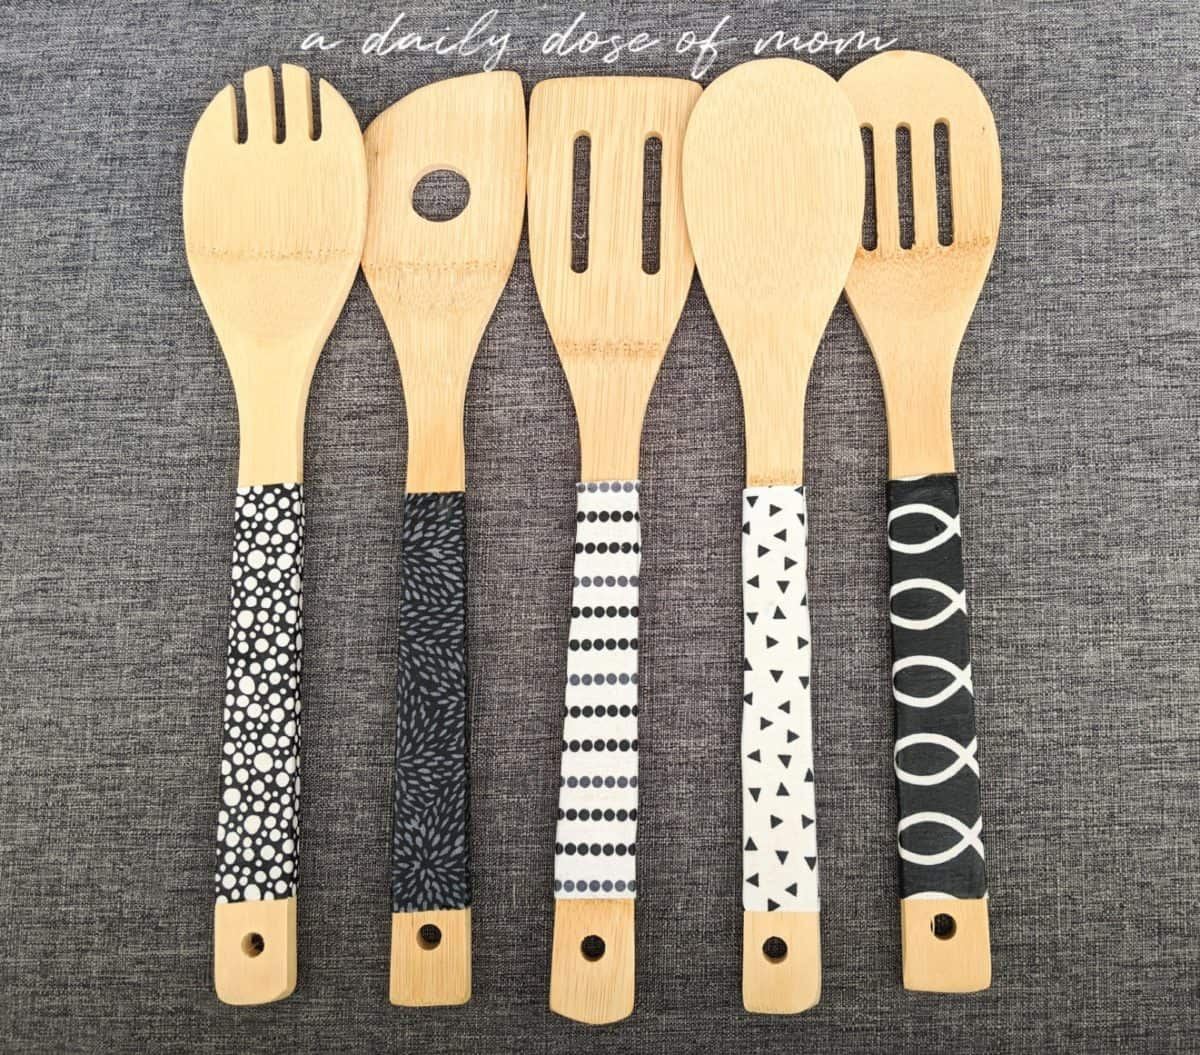 DIY Fabric-Covered Wooden Utensils 5